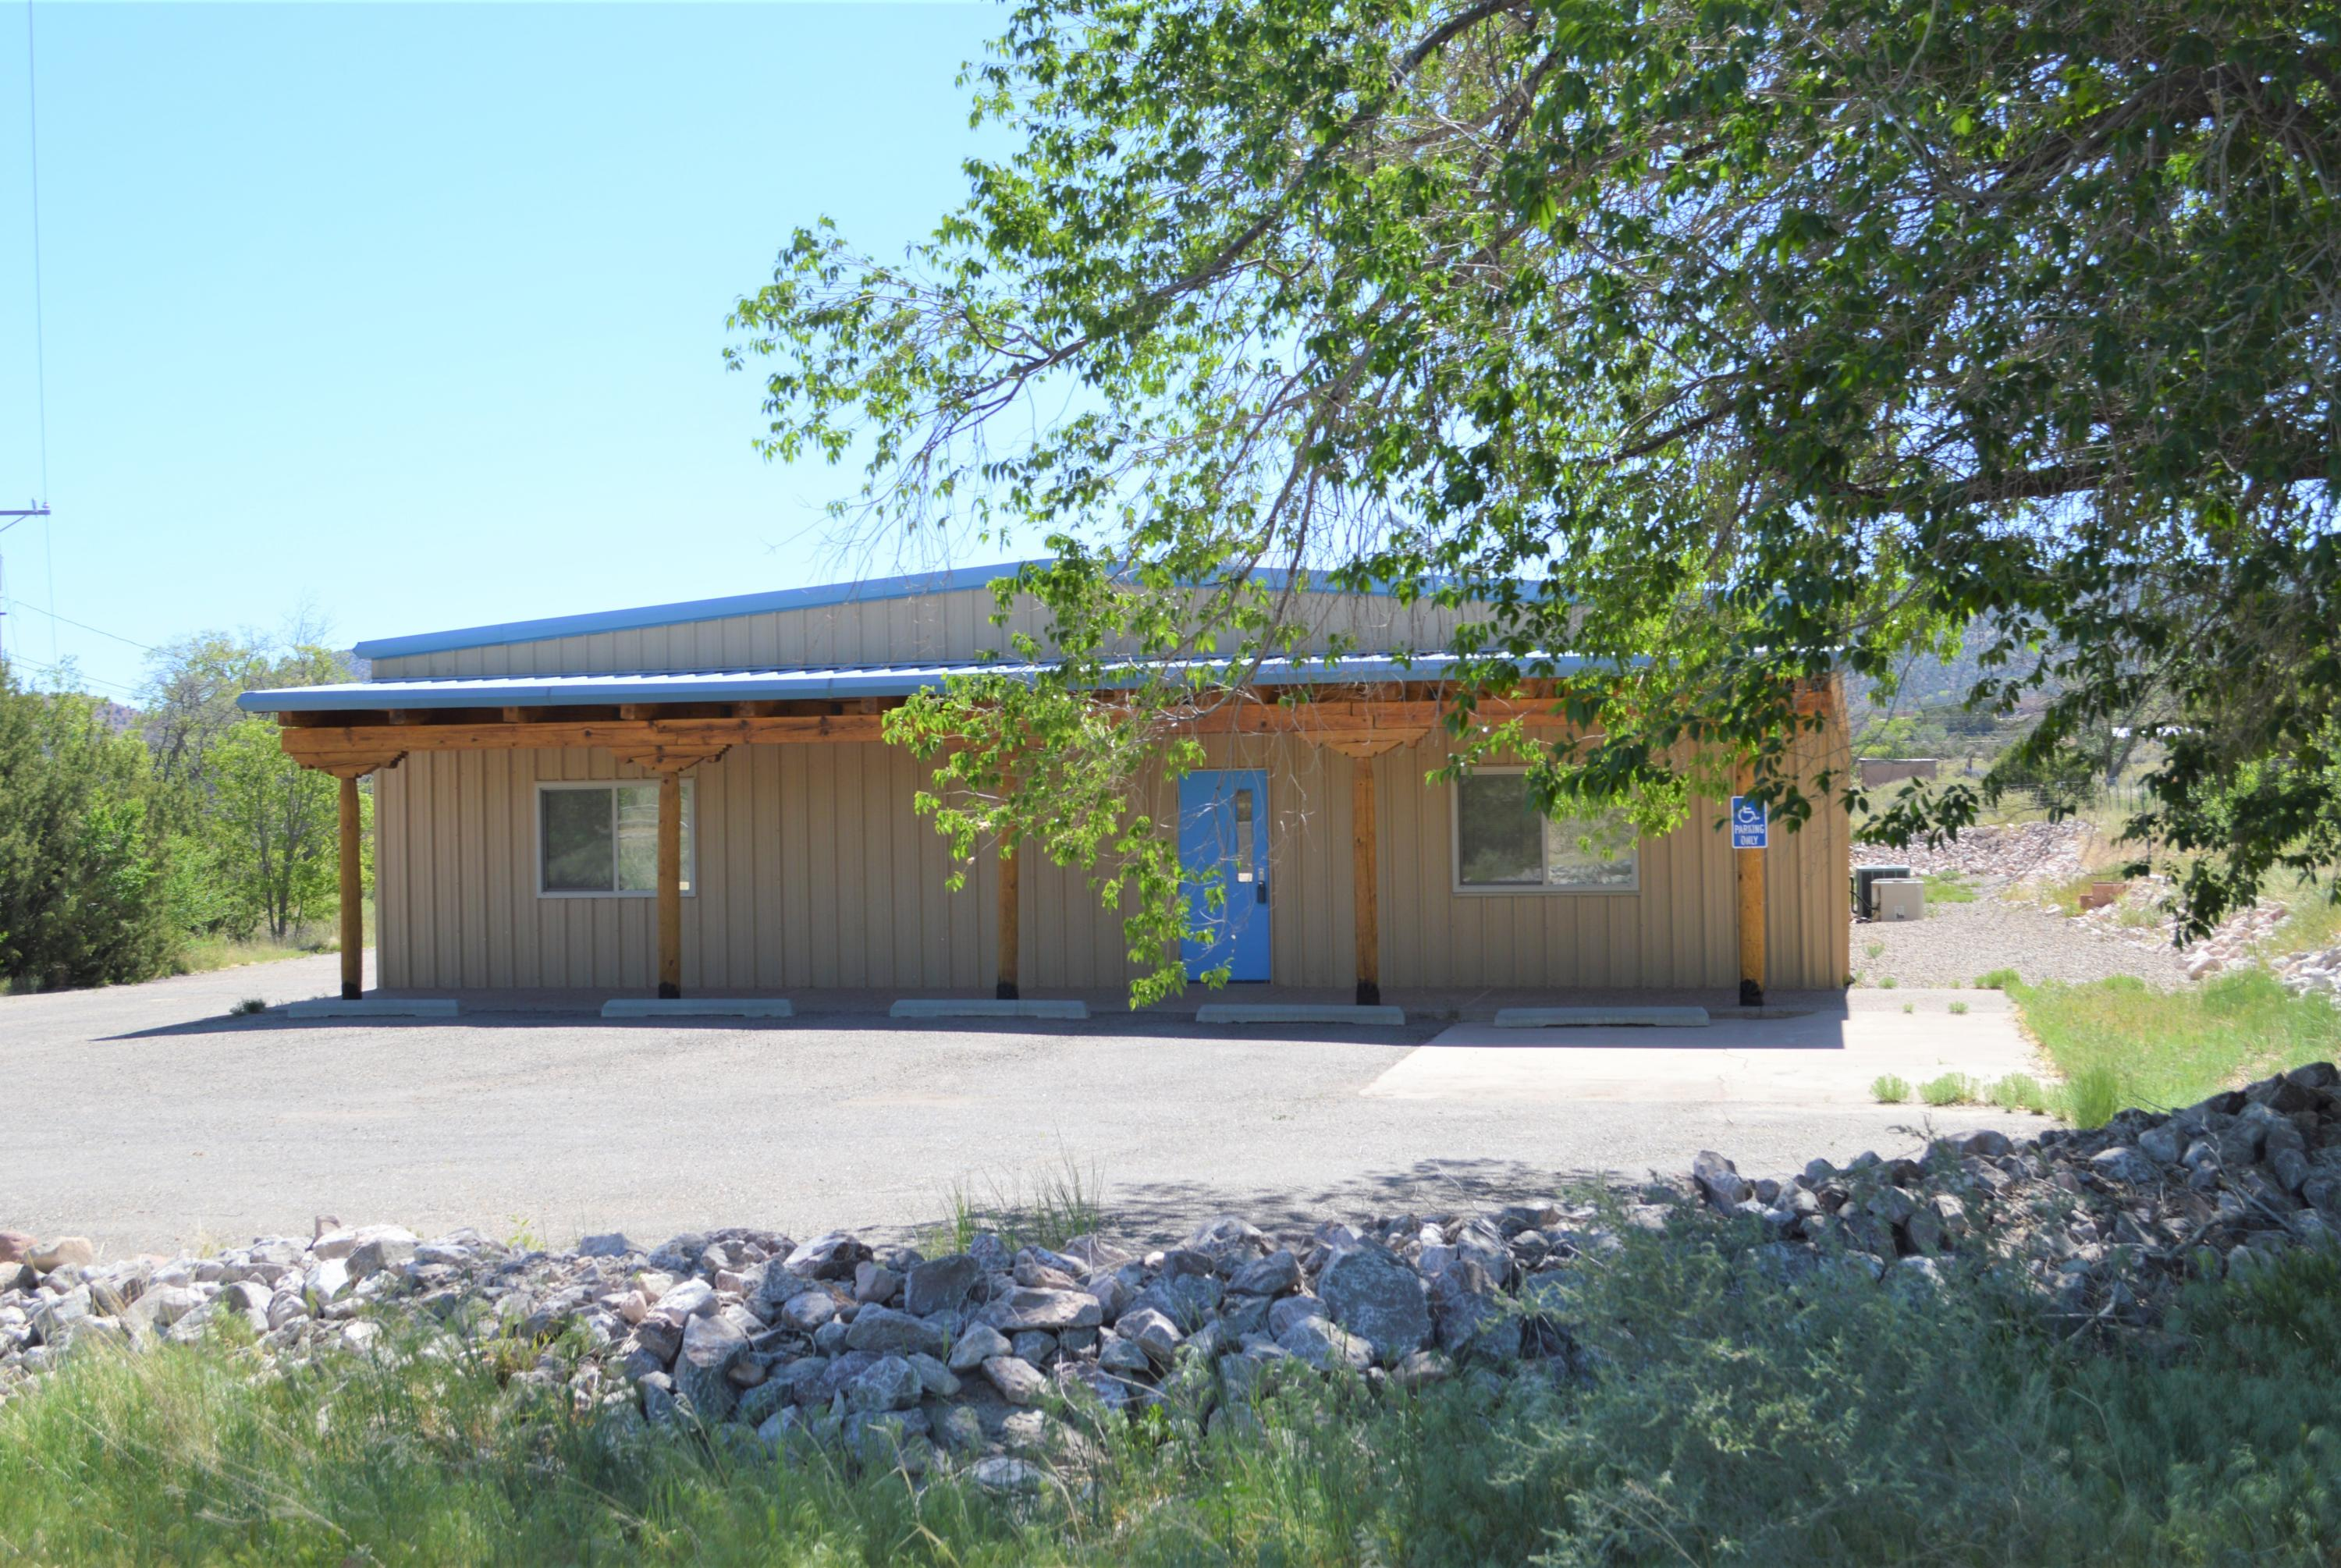 6 CAMINO DE LOS DESMONTES Property Photo - Placitas, NM real estate listing